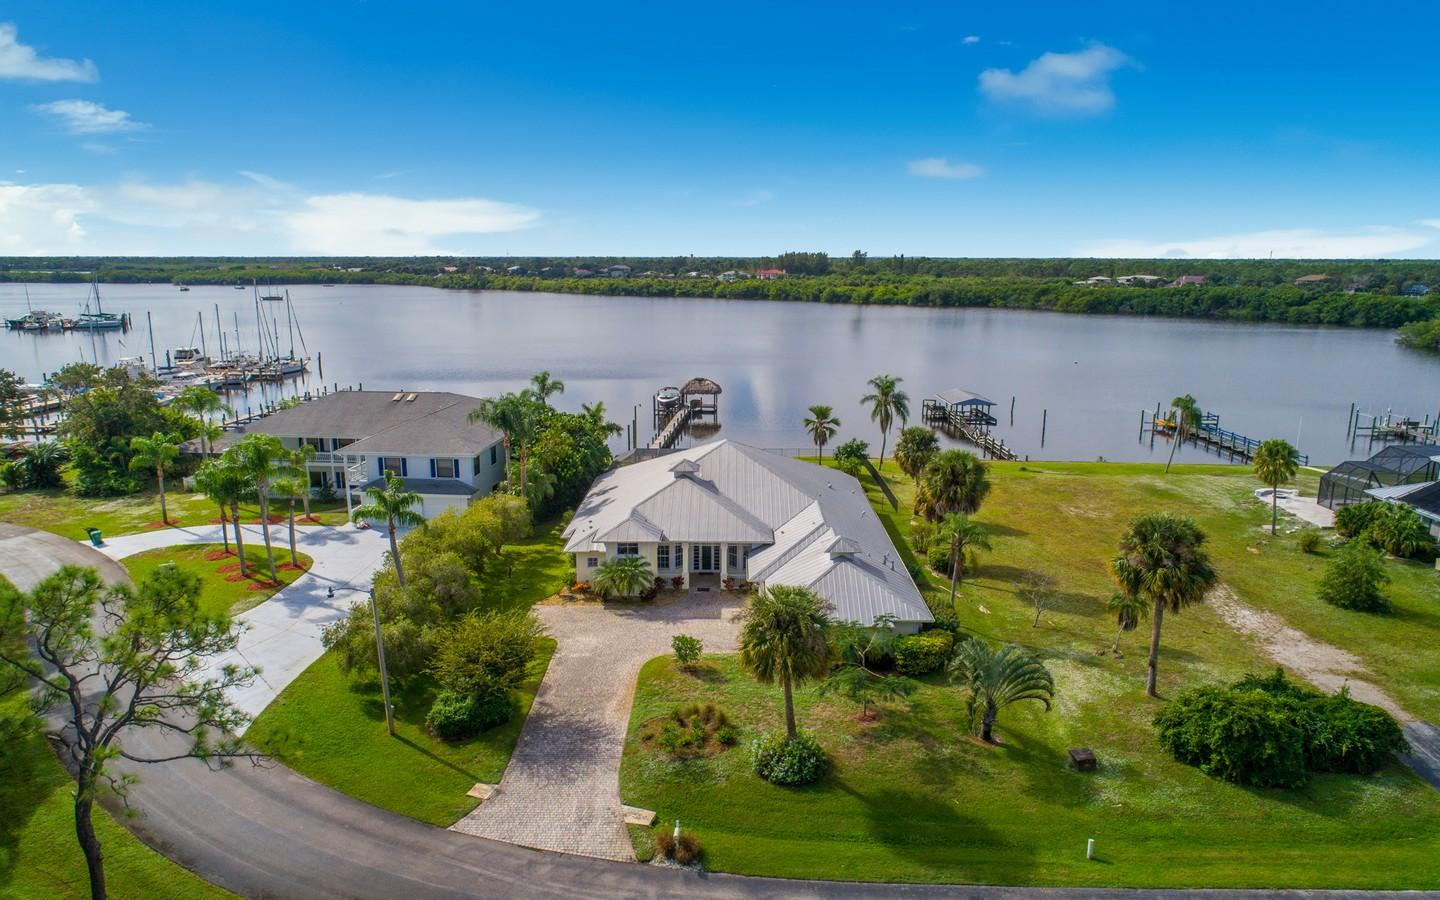 Discover this newer, custom, custom, custom Key West style wide waterfront luxury pool home with no expense spared! Special dockage with Tiki hut & 12,000lb lift will accommodate 3 boats! You will love the 12 & 13 ft coffered & tray ceilings, your gourmet kitchen with slab granite countertops, walk-in pantry + Kitchenaid & Bosch stainless steel appliances + a double wall oven & 5 burner cooktop! Custom wet bar for parties + an amazing entertaining screened patio with fabulous summer kitchen + gas heated spa + luxury pool! Elegant master bath with jetted tub, separate shower with dual shower heads & granite countertops! Solid CBS construction with concrete hardiplank siding, impact windows + roll down shutters on patio! 3+ car garage! A must see! Fall in love today!